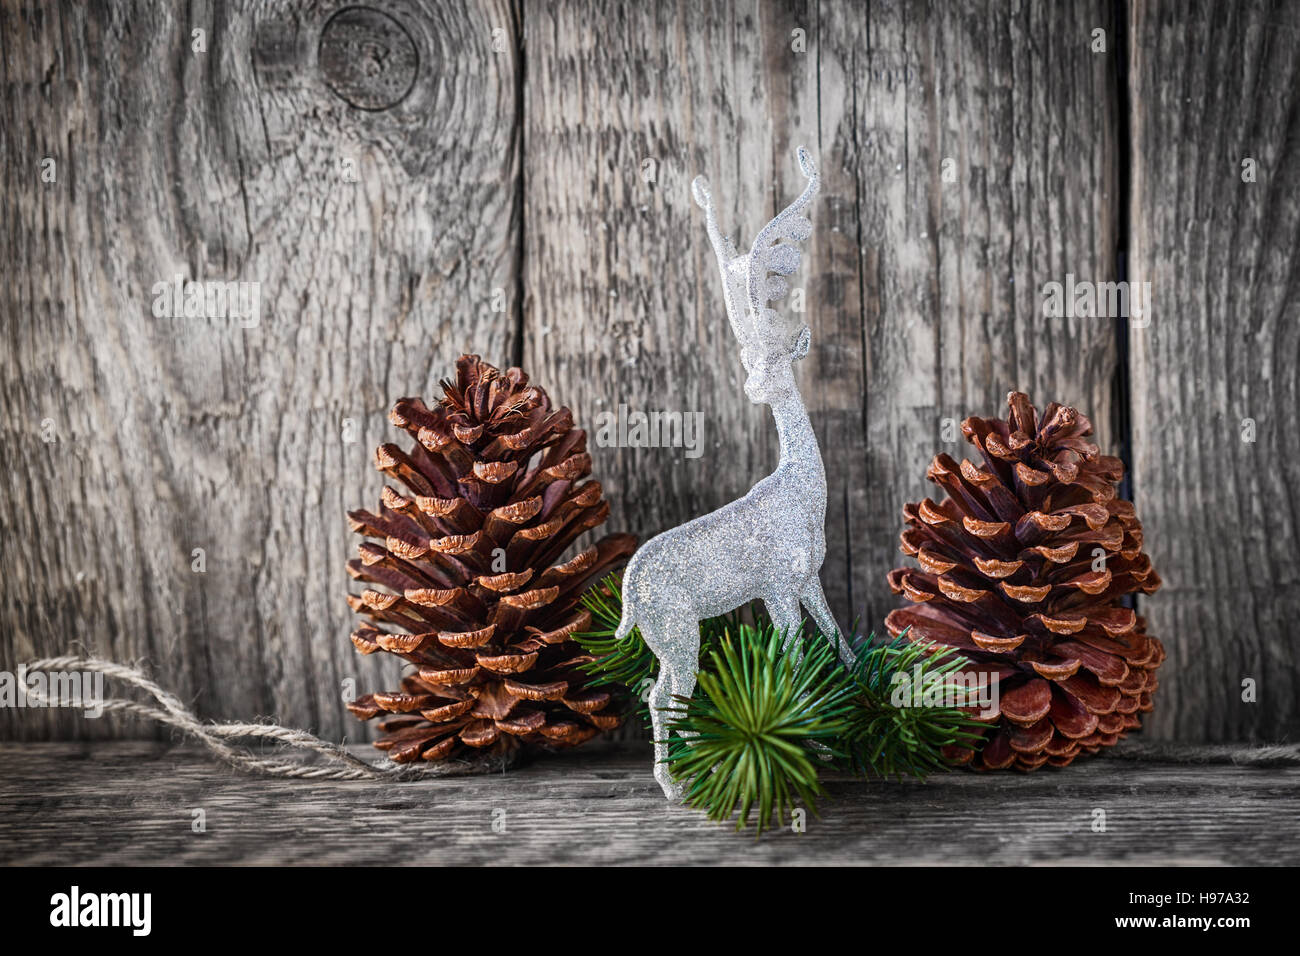 Home decor pine cones  and white deer on a wooden background. - Stock Image